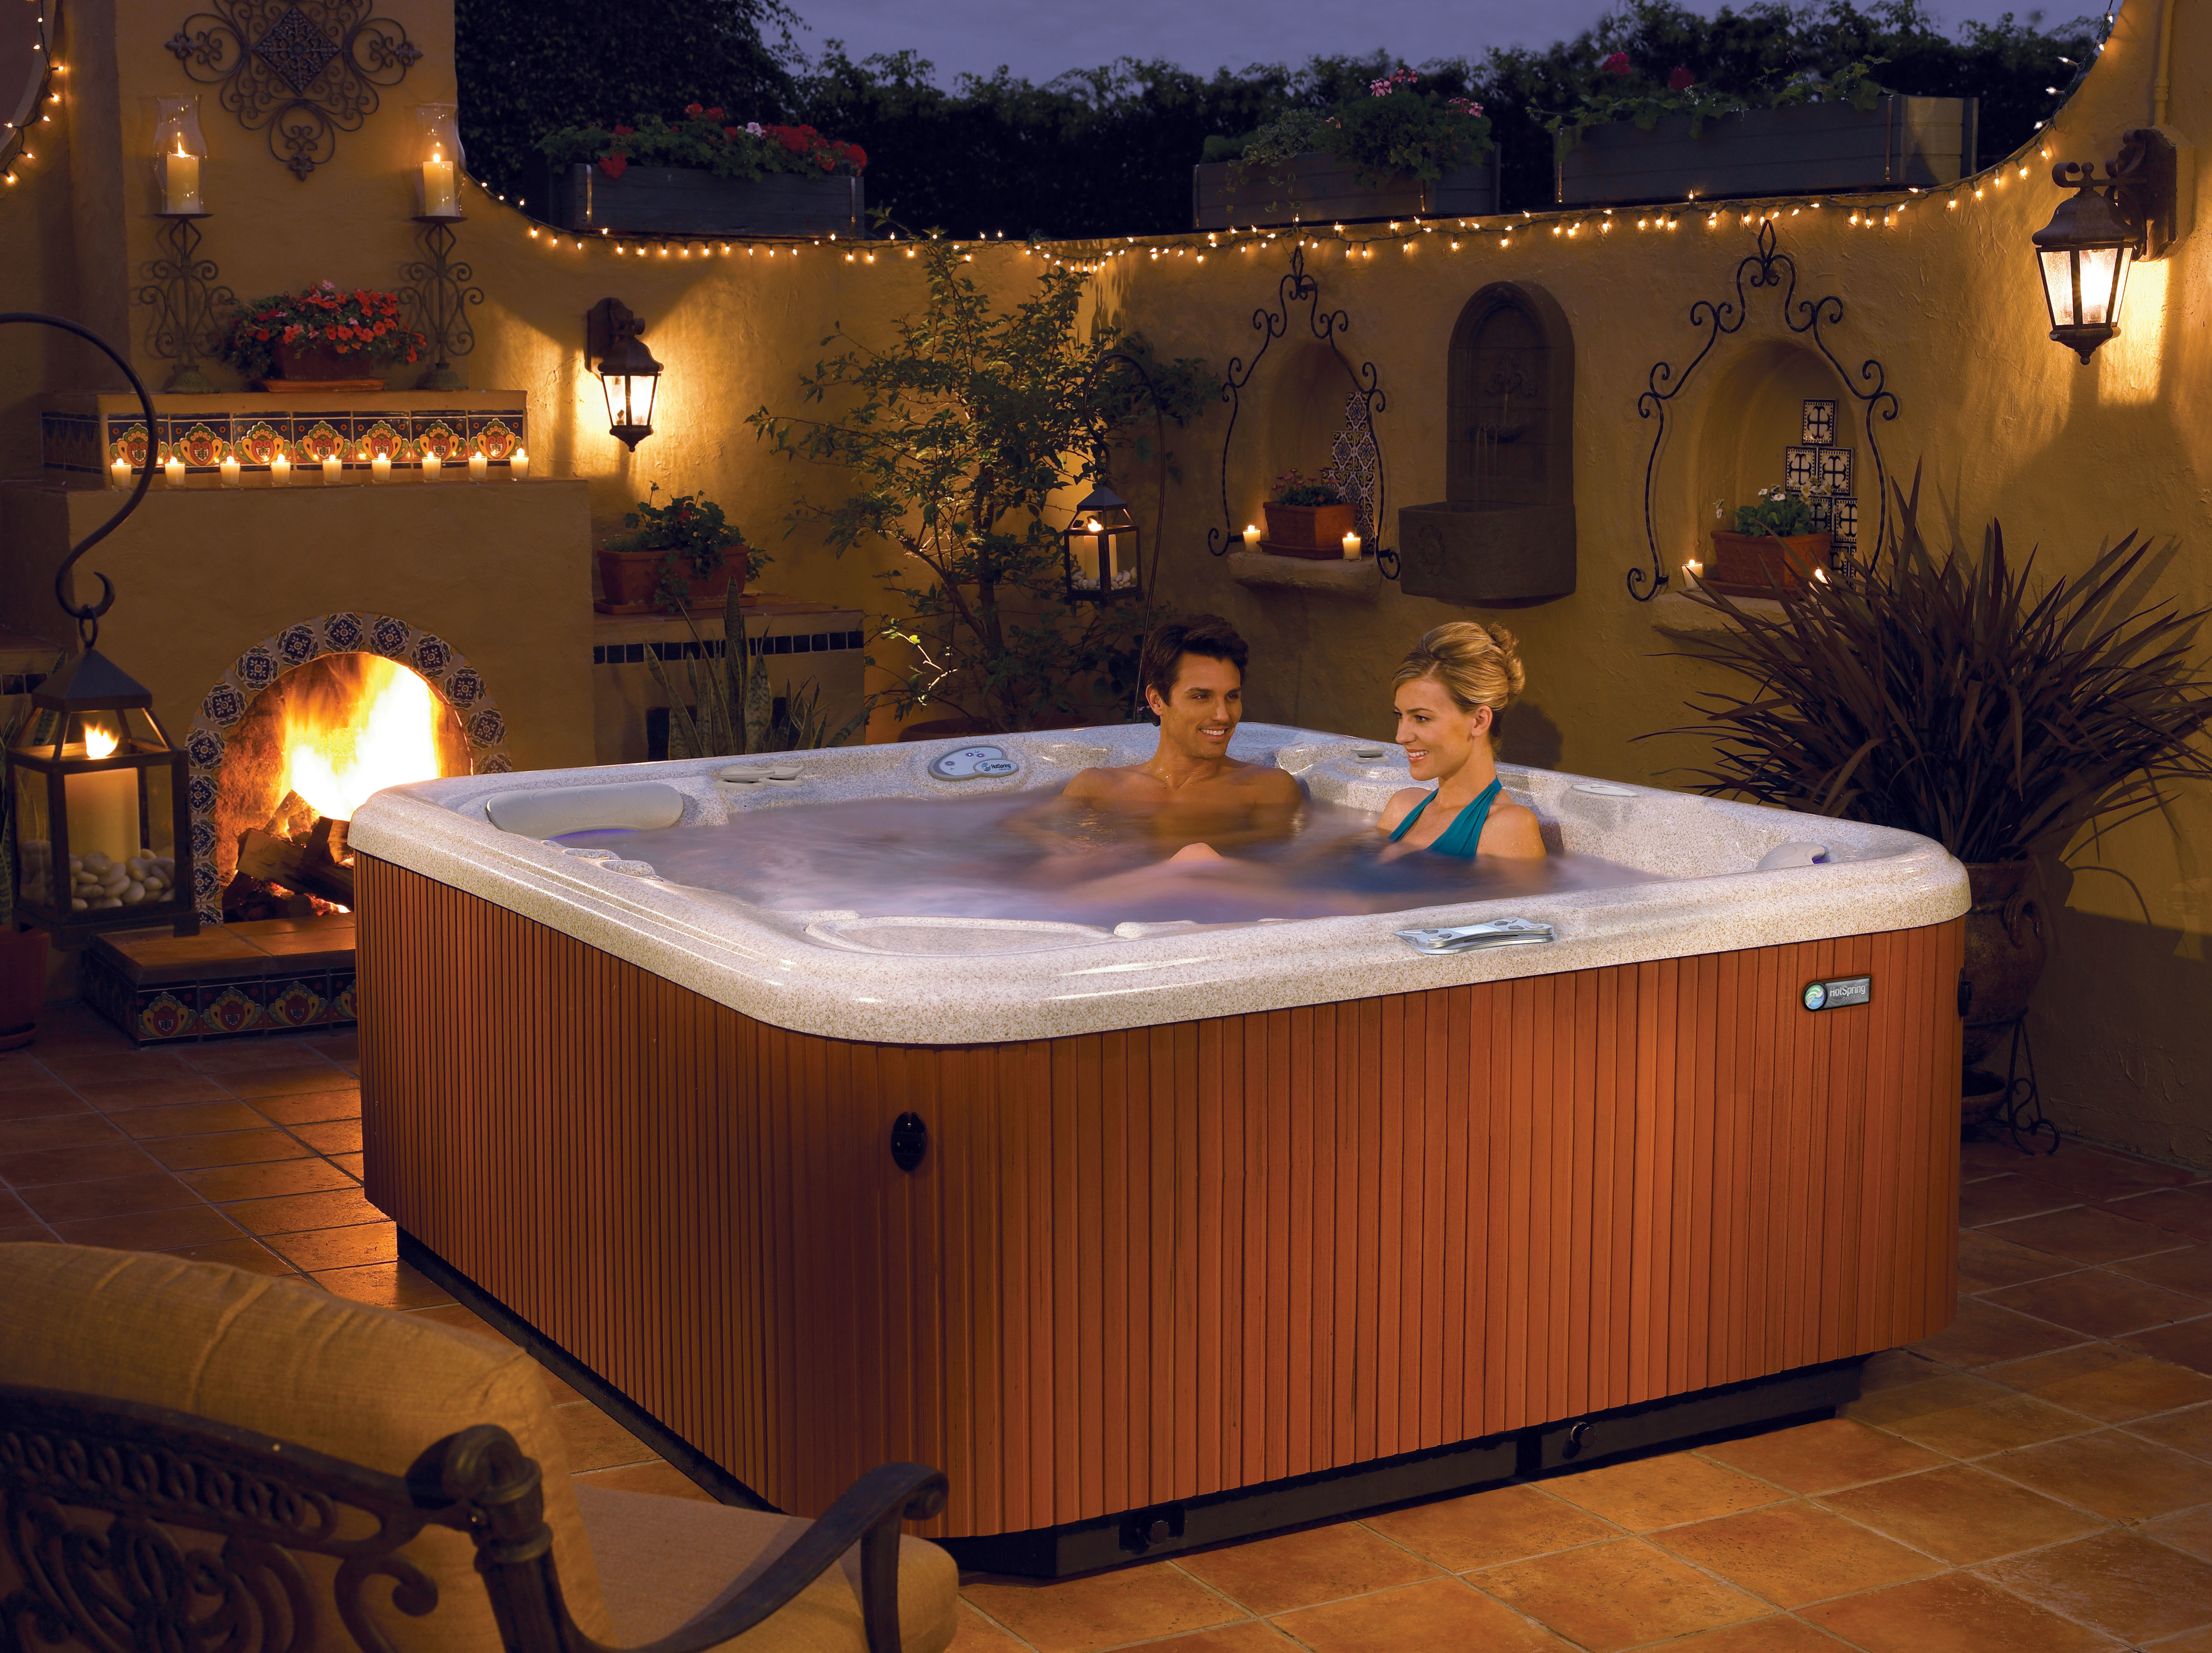 Ultimate hot tub and bbq grill center pompano beach